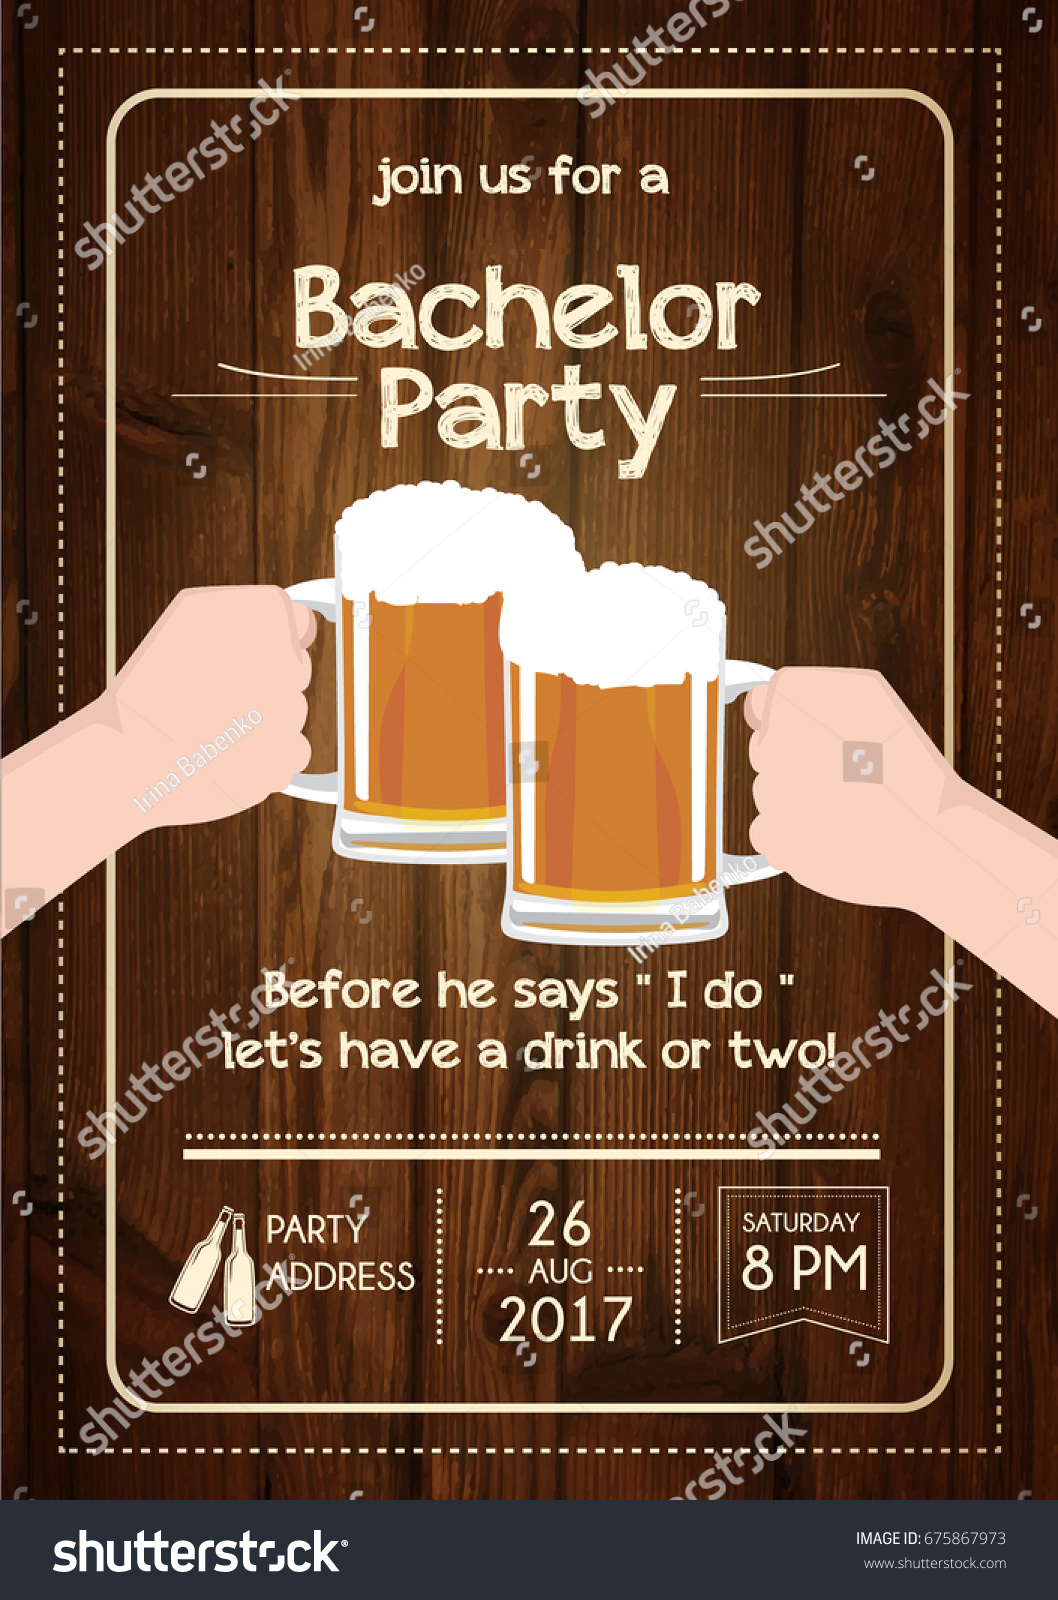 Bachelor Party Invitation Card Stock Vector HD (Royalty Free ...